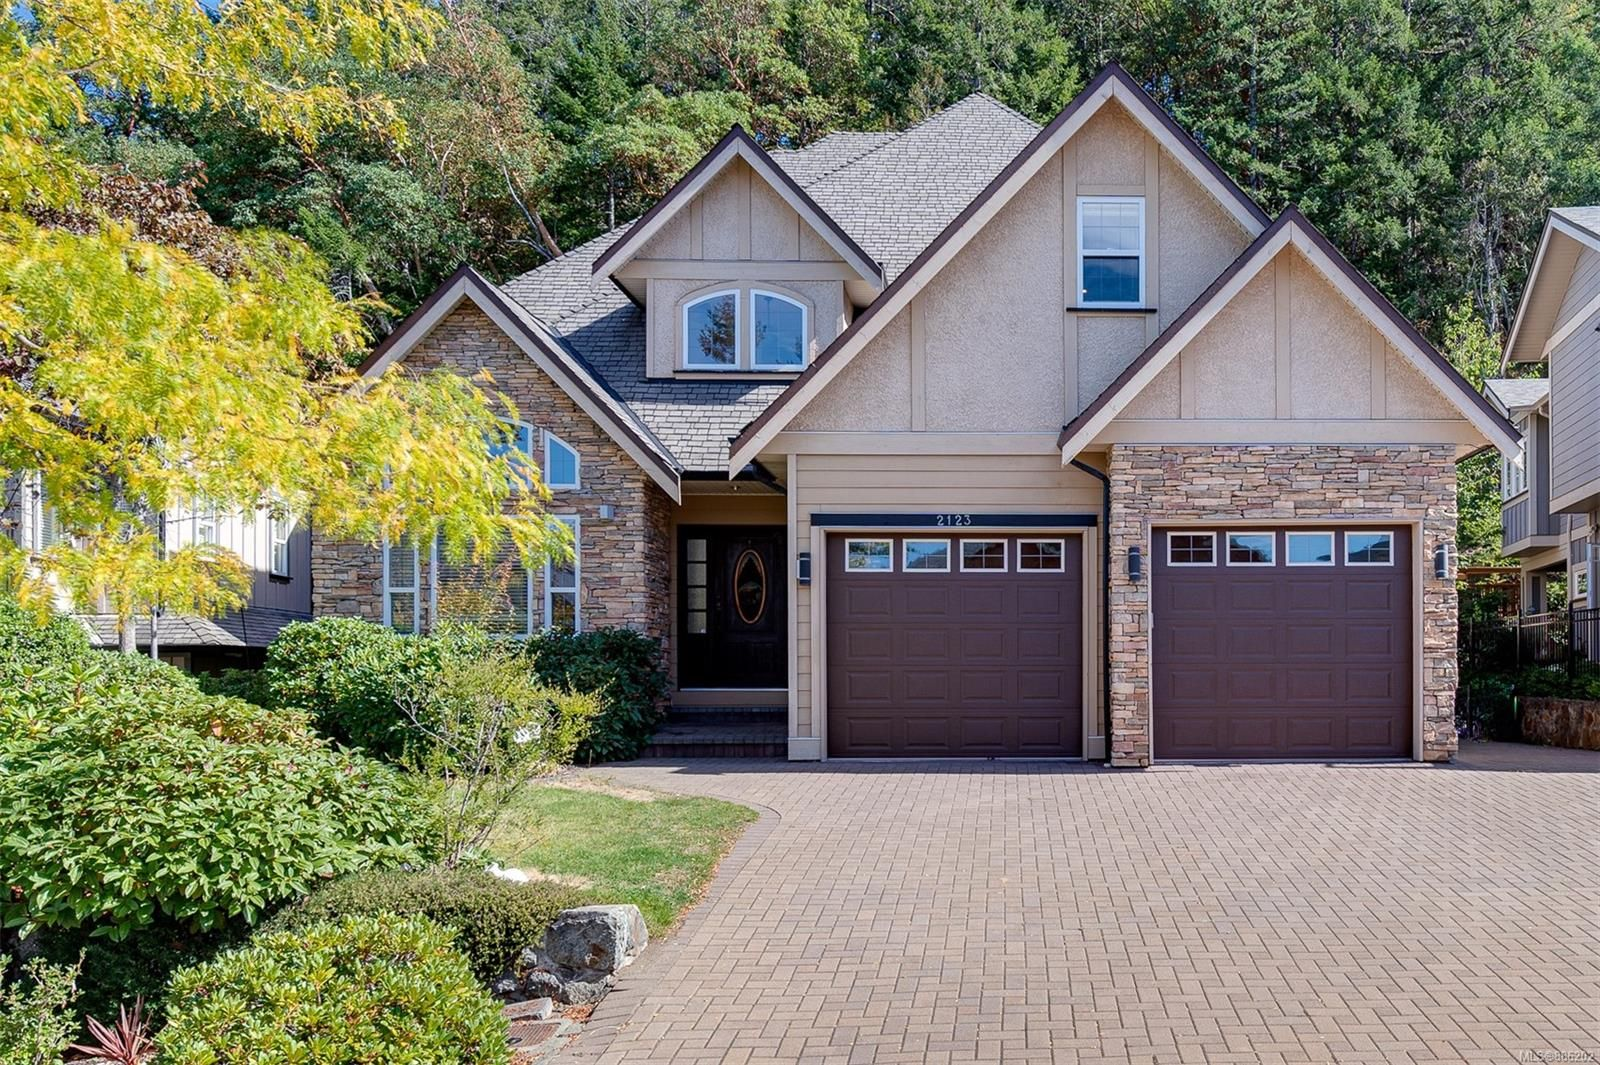 Main Photo: 2123 Nicklaus Dr in : La Bear Mountain House for sale (Langford)  : MLS®# 886202